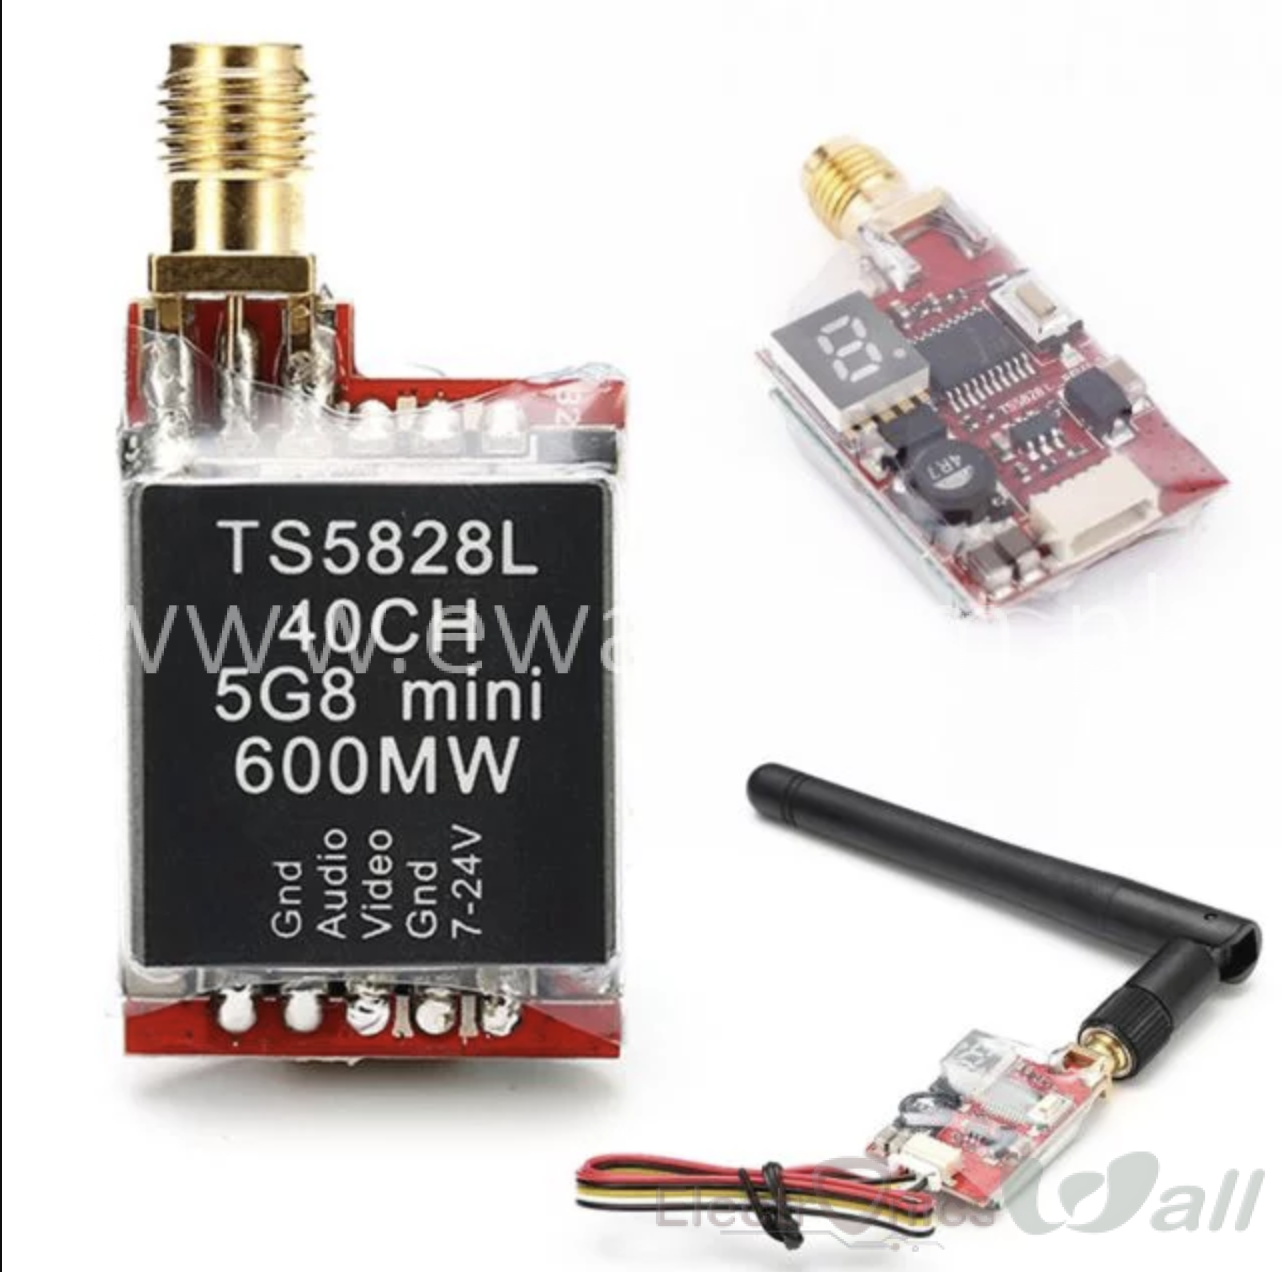 Micro 600mW 5.8G 40CH TX600S 7-24V Wireless Video AV OCDAY Transmitters